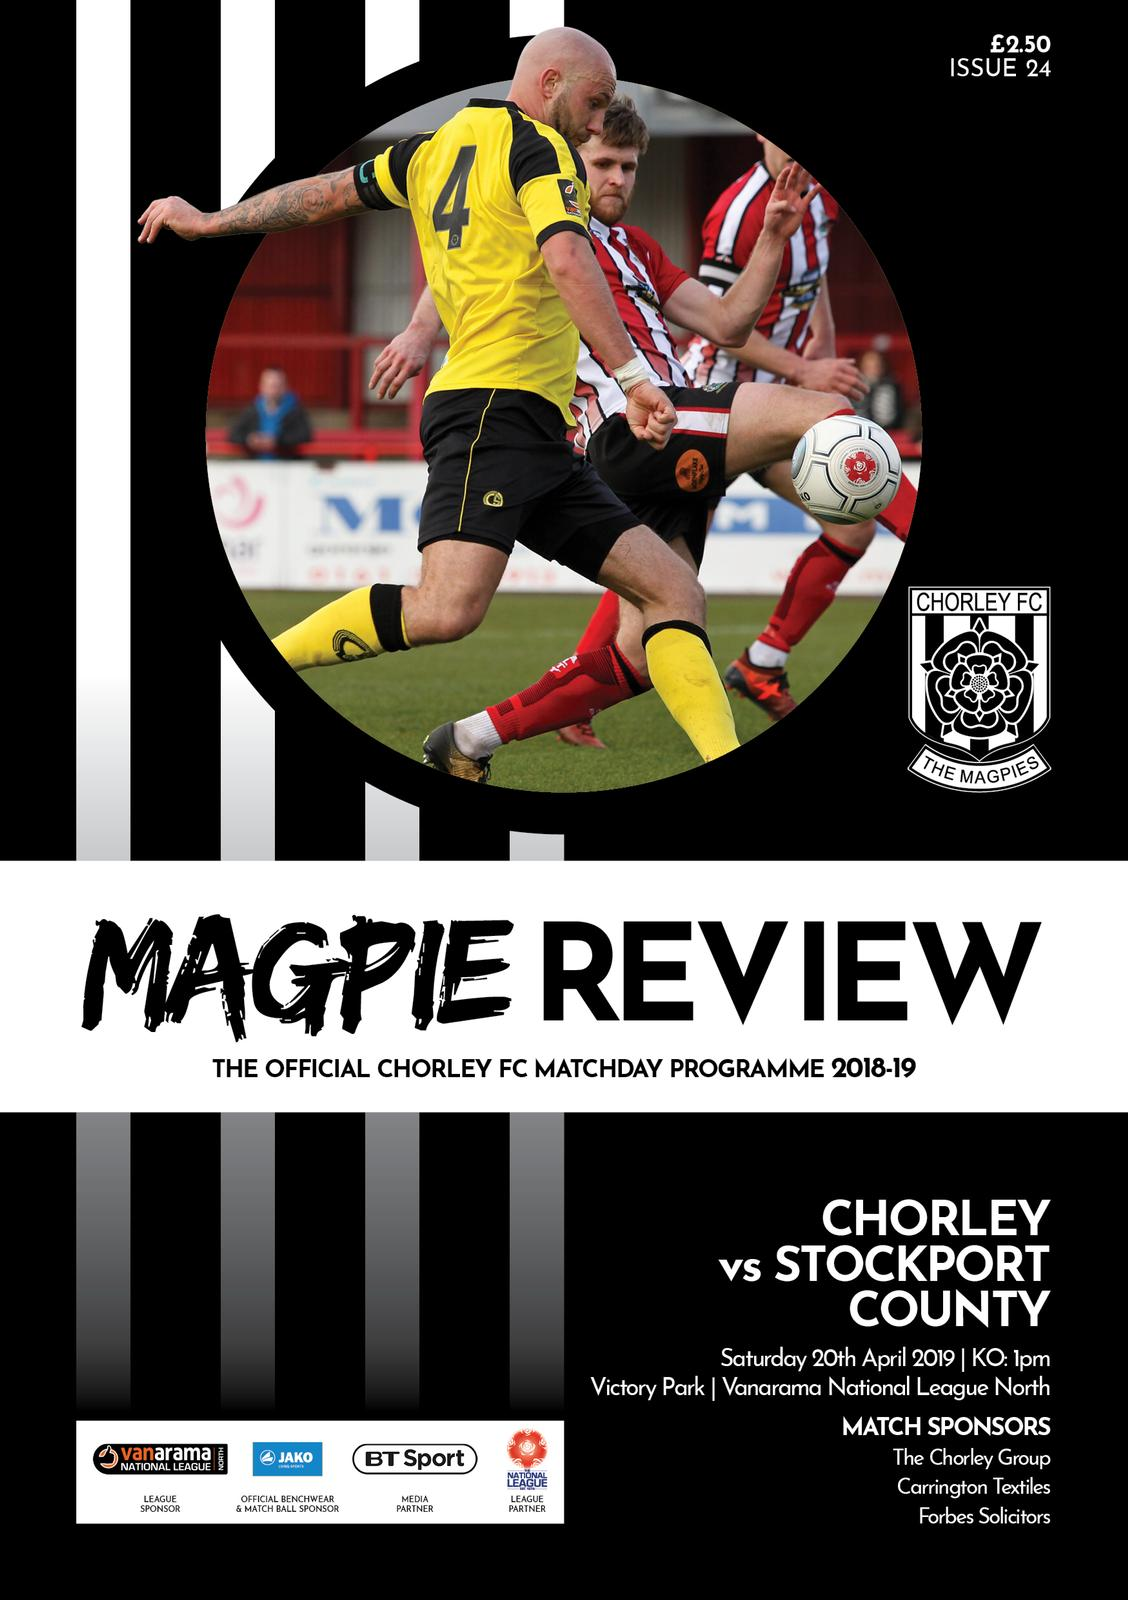 Magpie Review: Issue 24